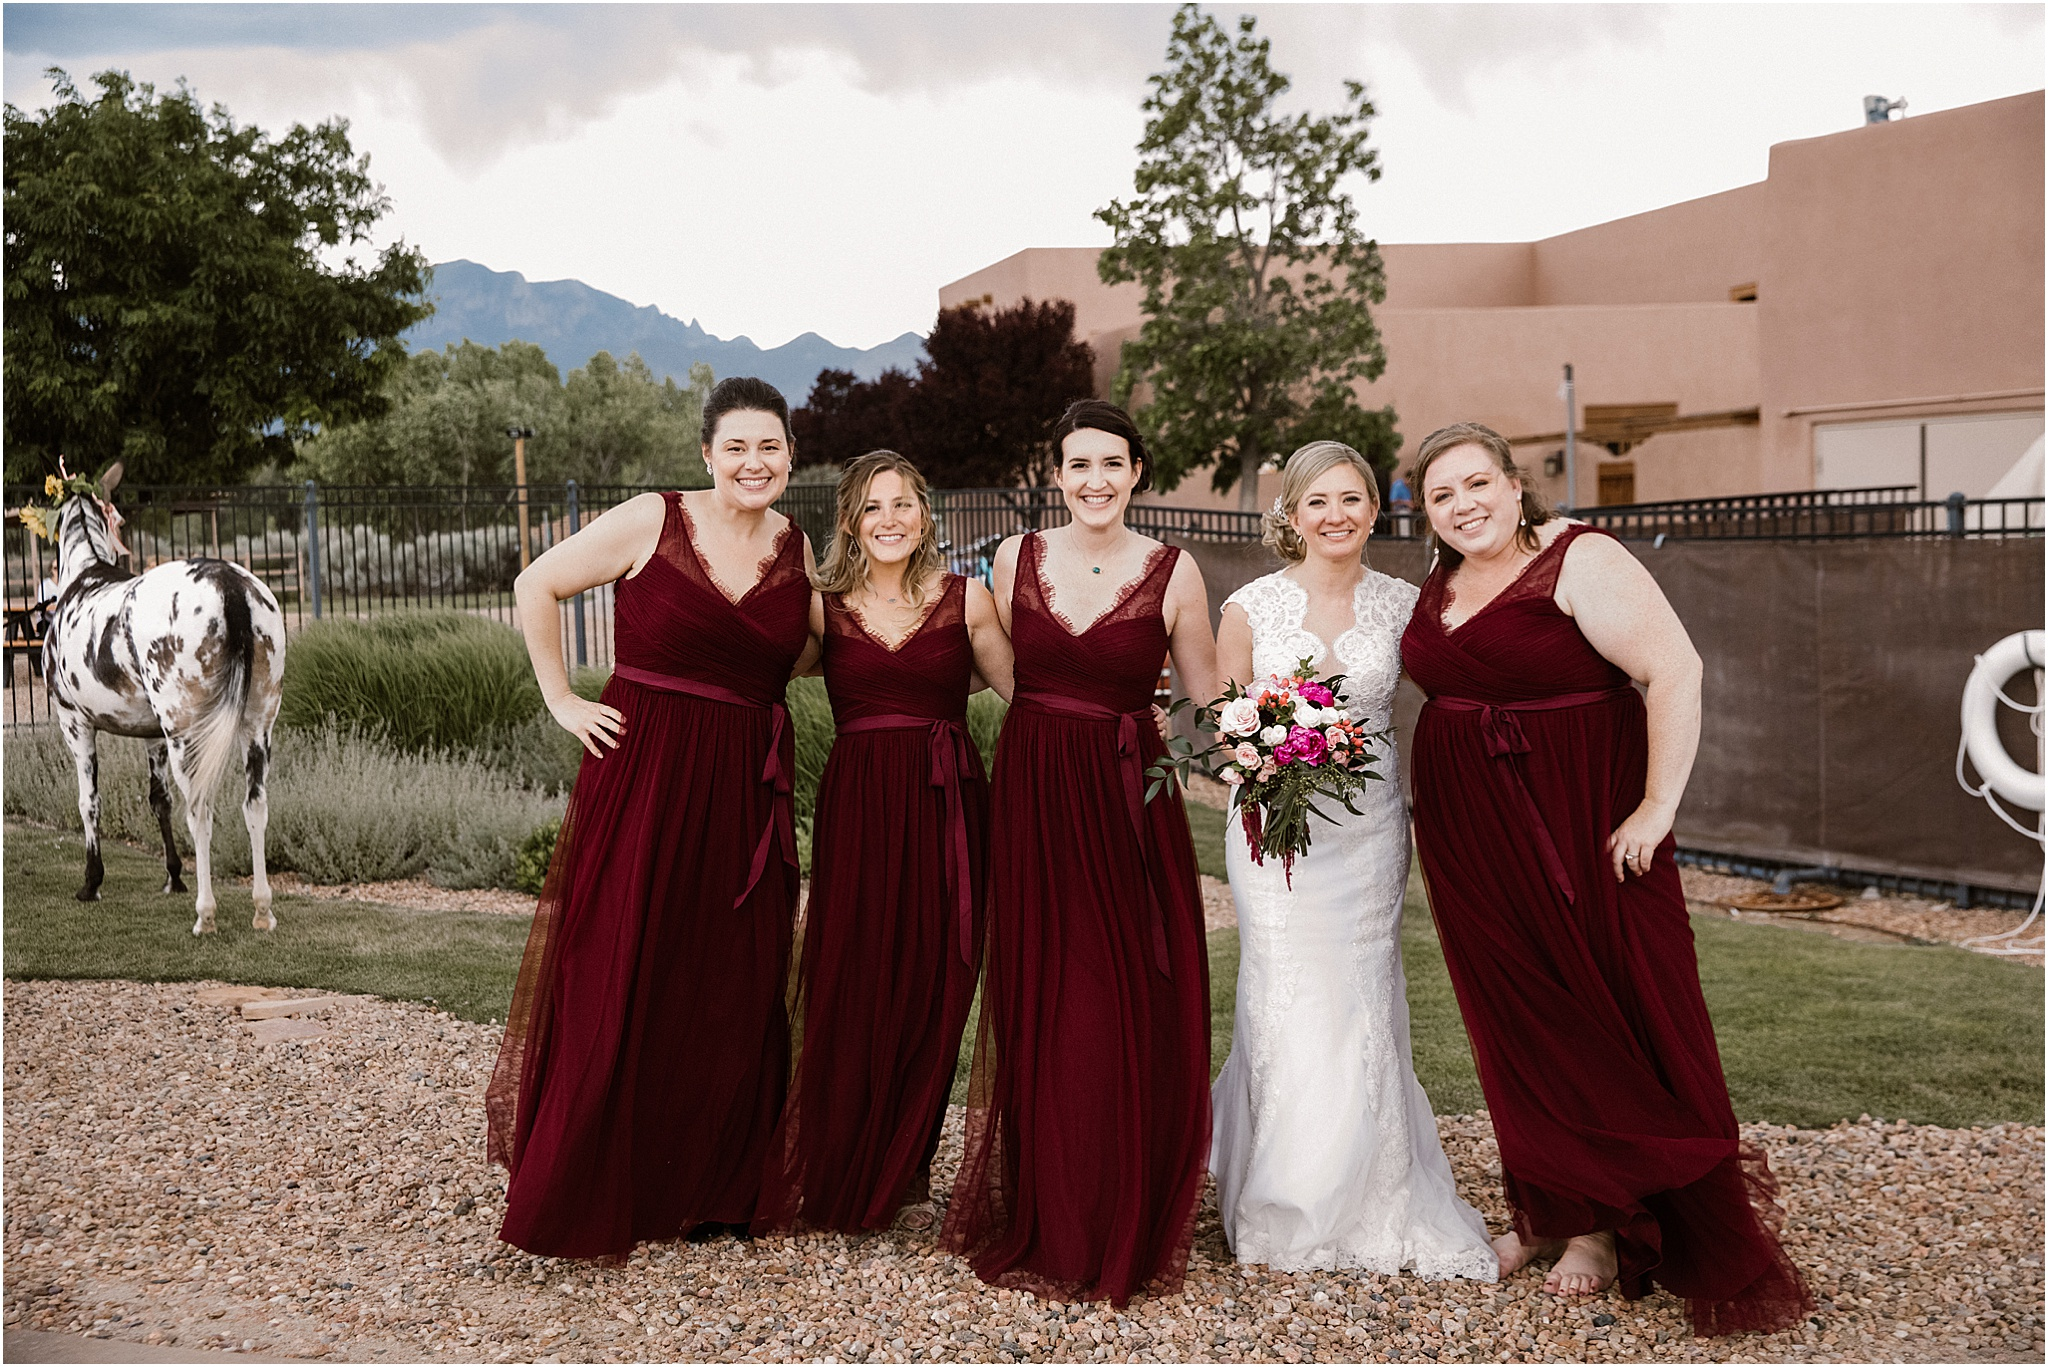 JENNA_JEROME_BLUE ROSE PHOTOGRAPHY_ABQ WEDDING_48